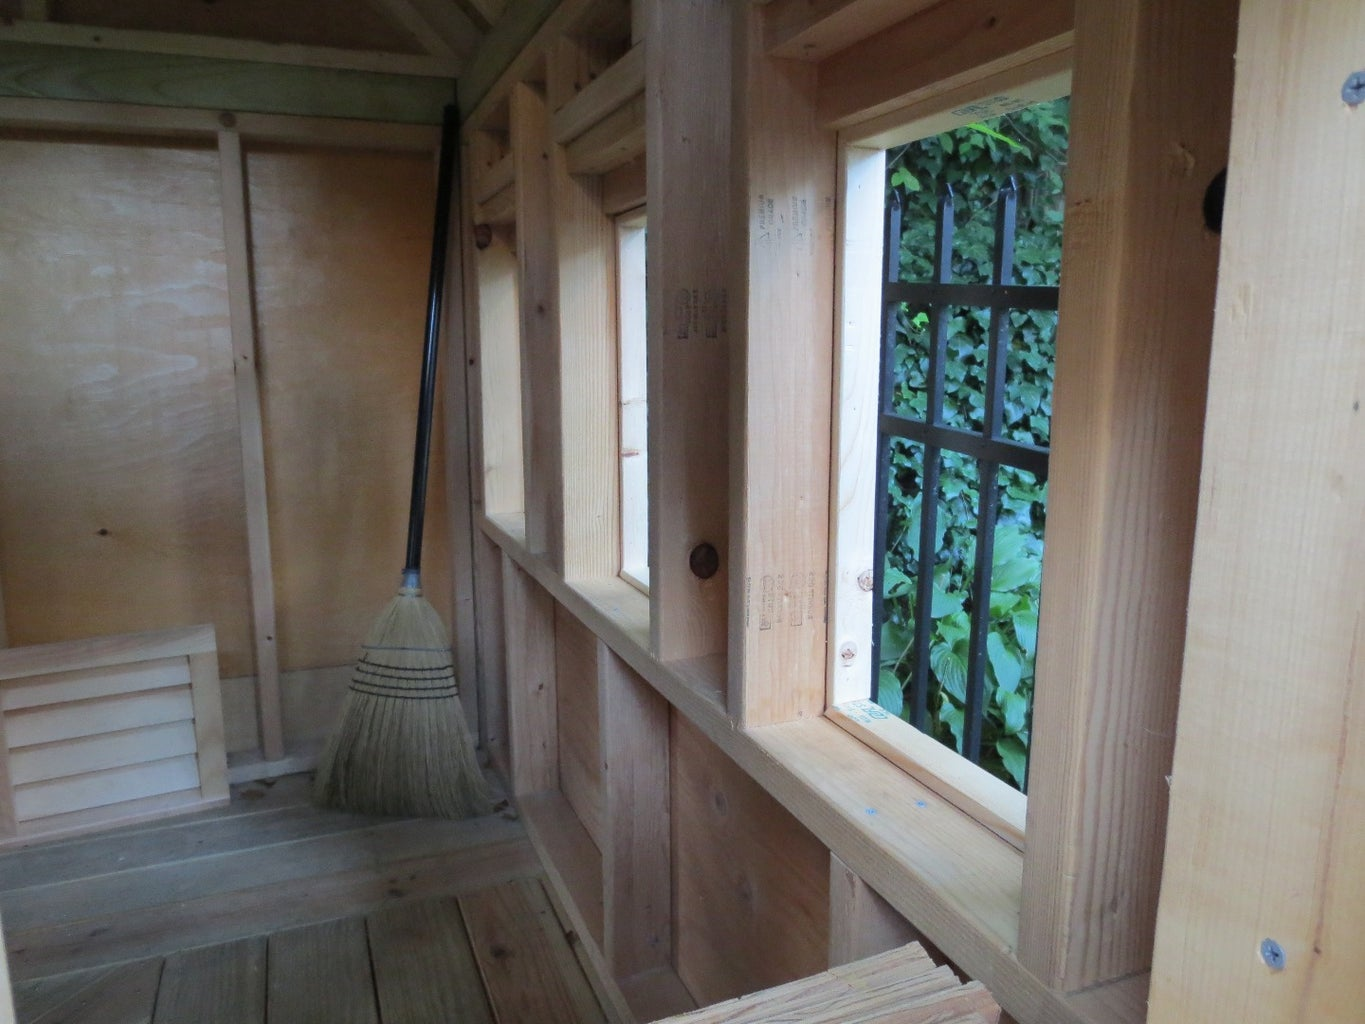 Frame in the Windows